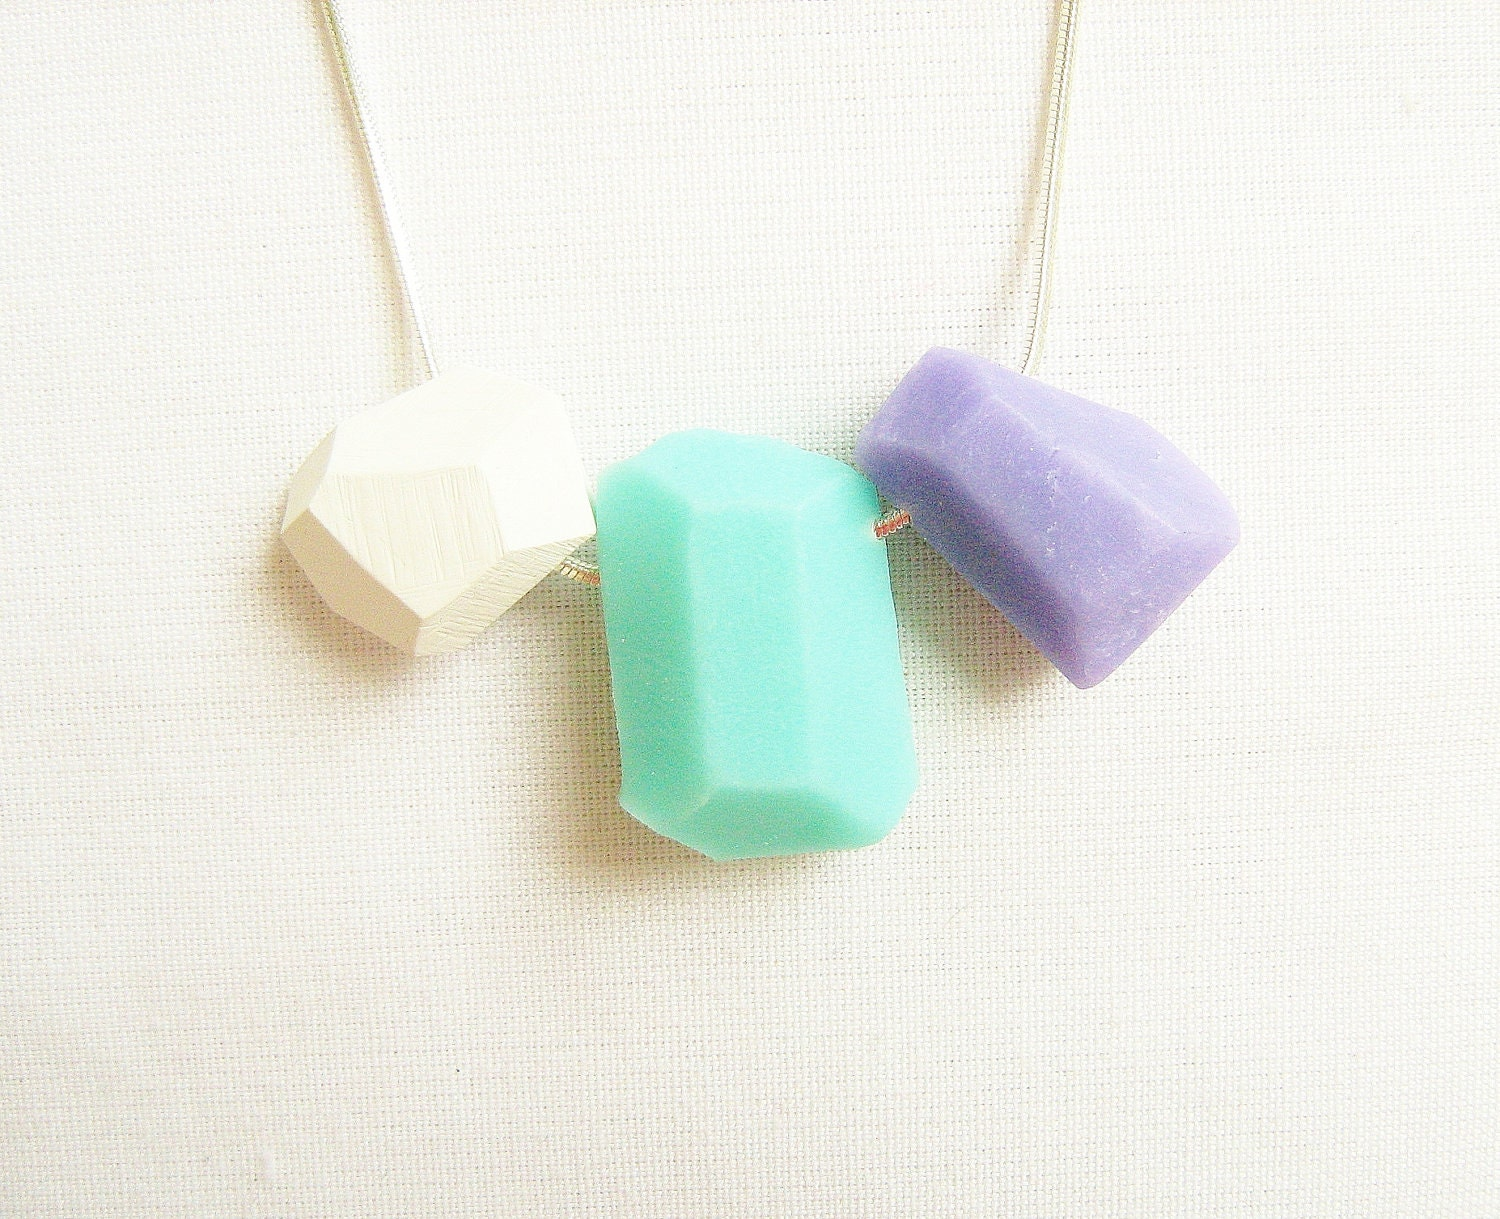 Pastel Geo Necklace in Mint, Soft Lilac and White - Rare Diamonds Collection - AlinaandT